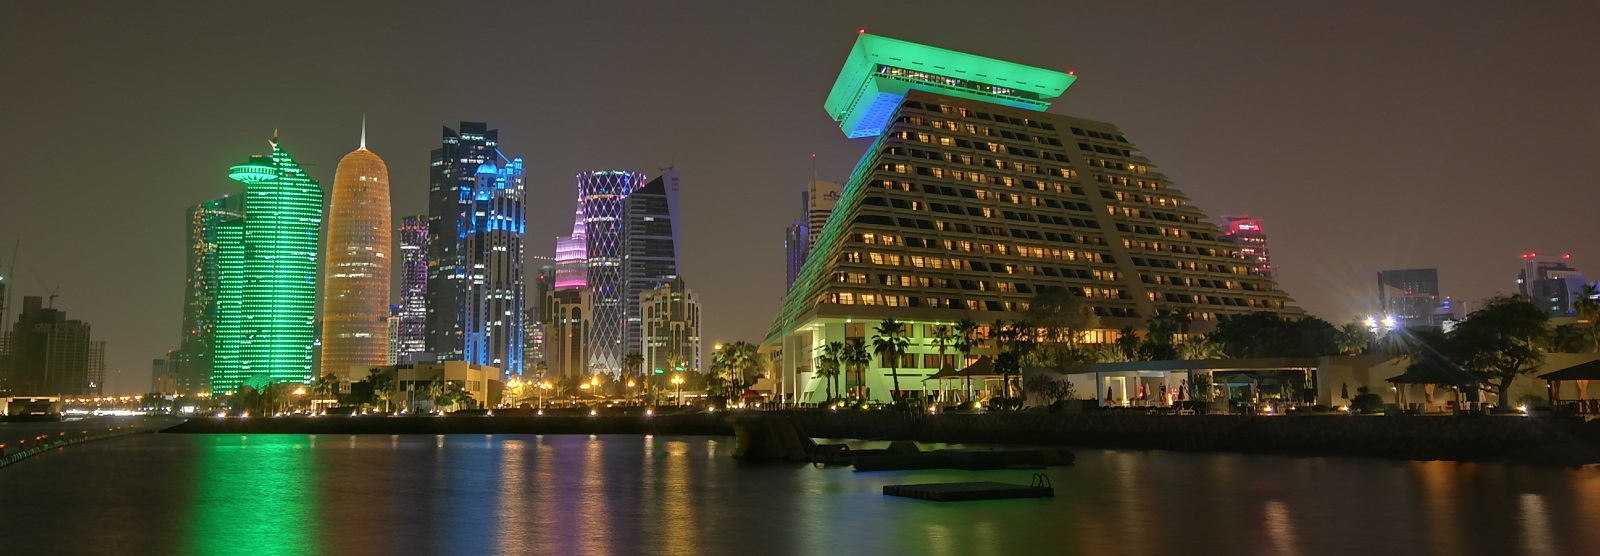 Doha, Qatar (Photo: Nikolovskii/Flickr)